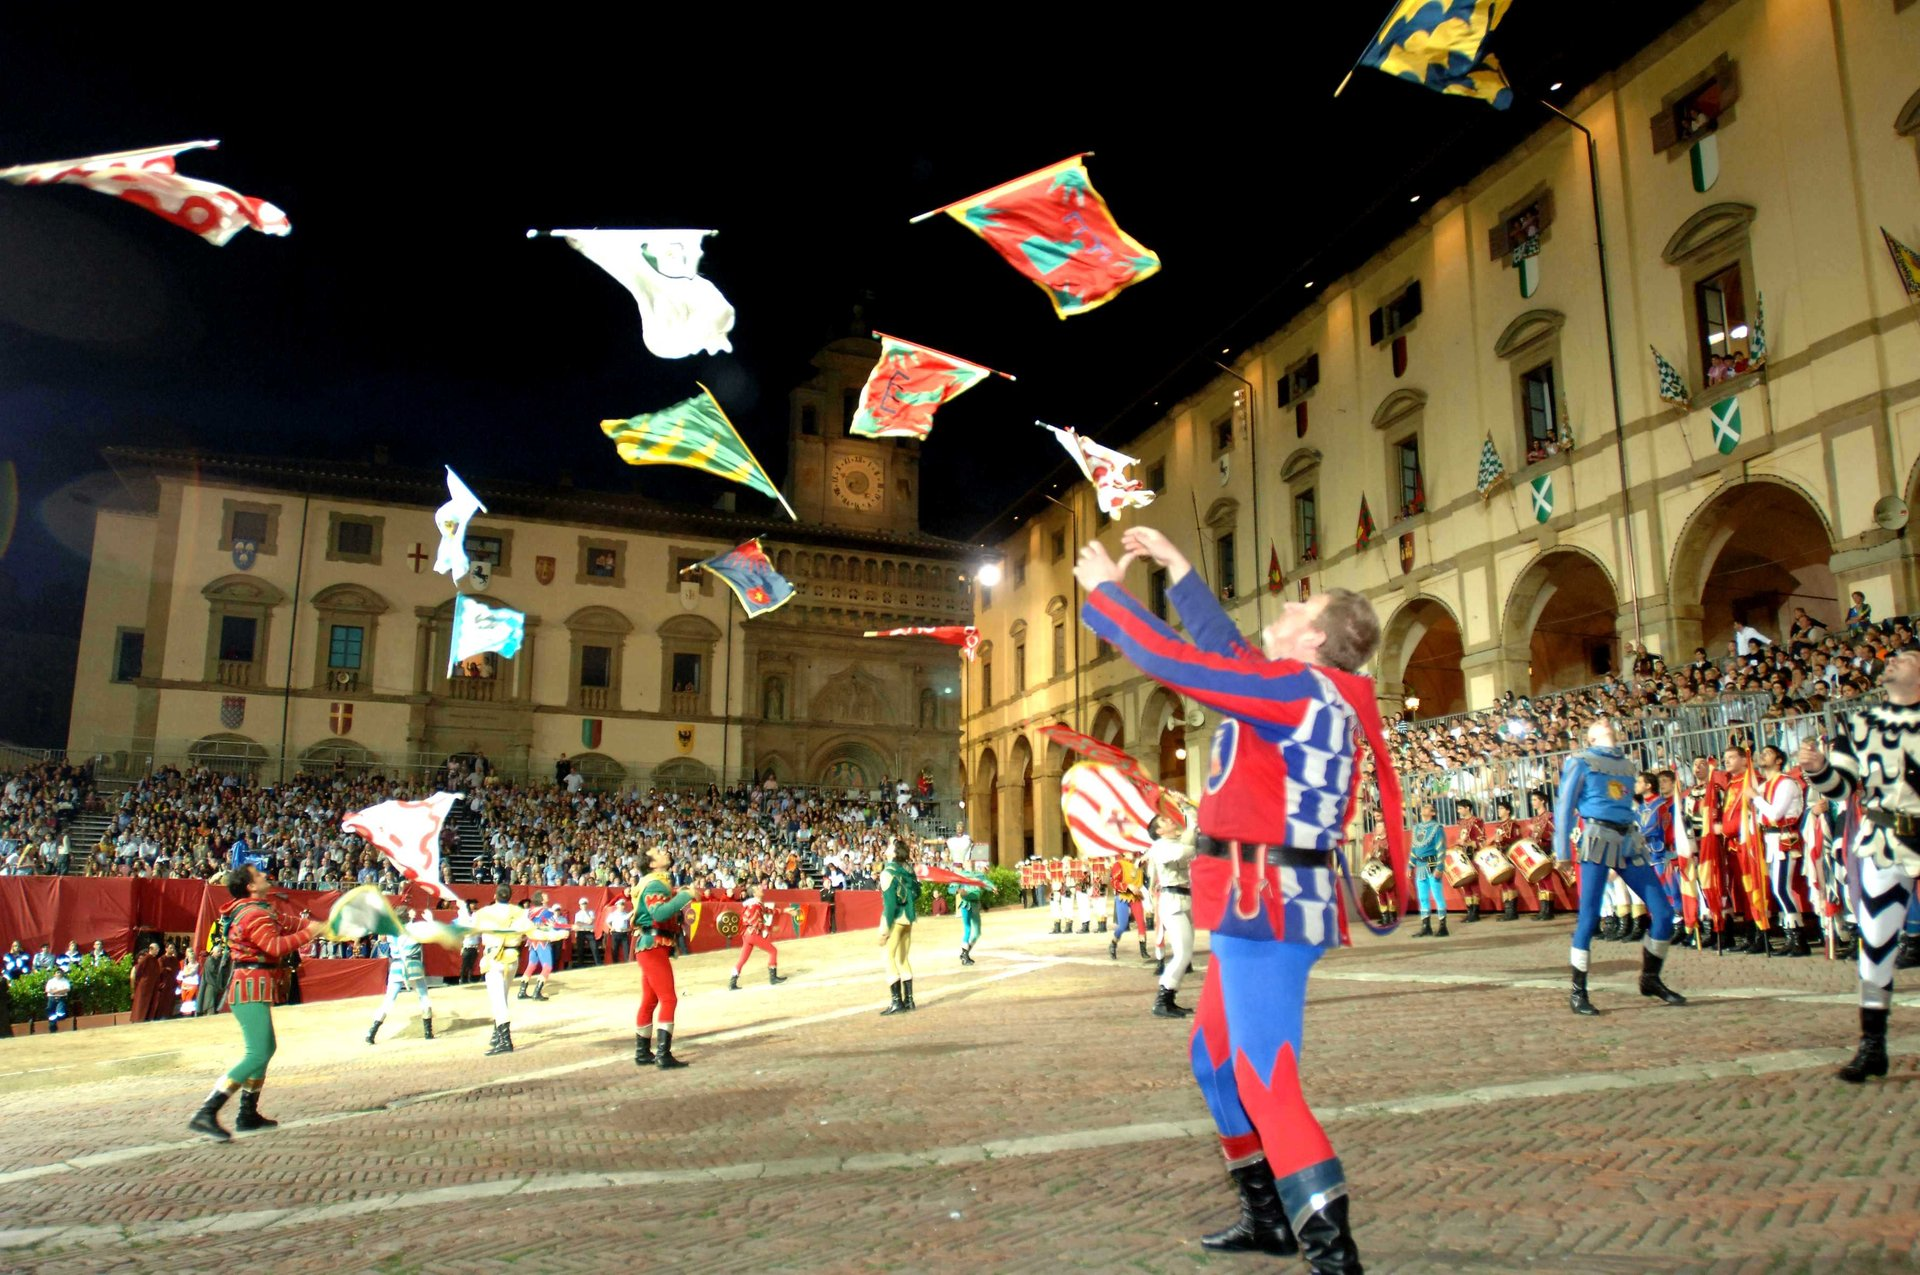 Best time to see Giostra del Saracino (Joust of the Saracens) in Tuscany 2020